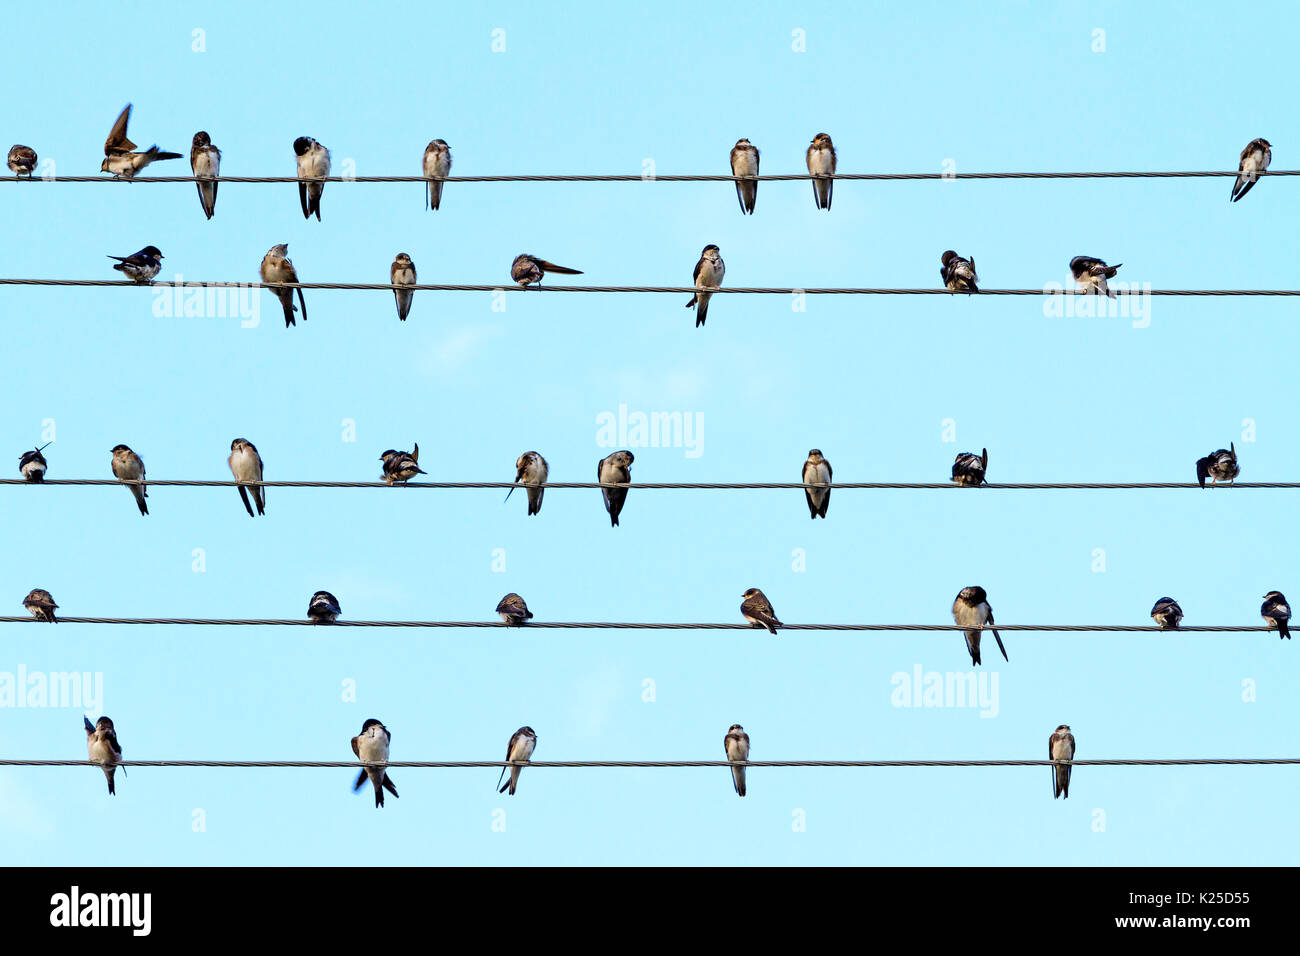 Musical notes performed by birds on the wires - Stock Image